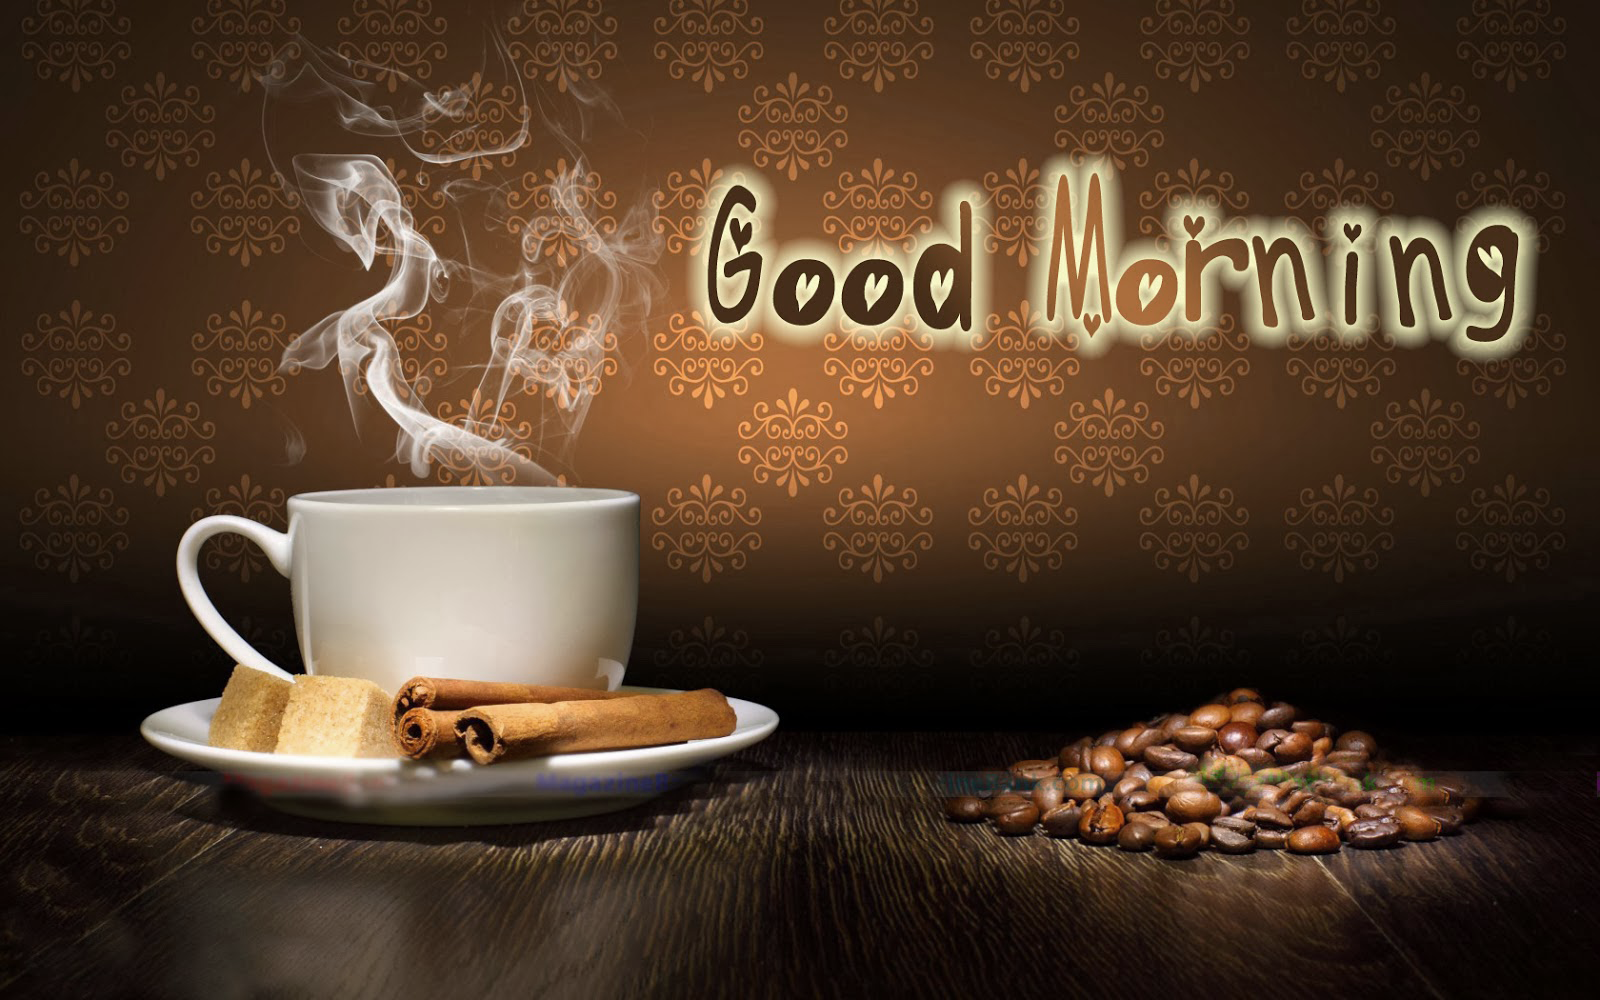 Good Morning With Coffee Cup HD Wallpaper - Coffee Morning PNG HD